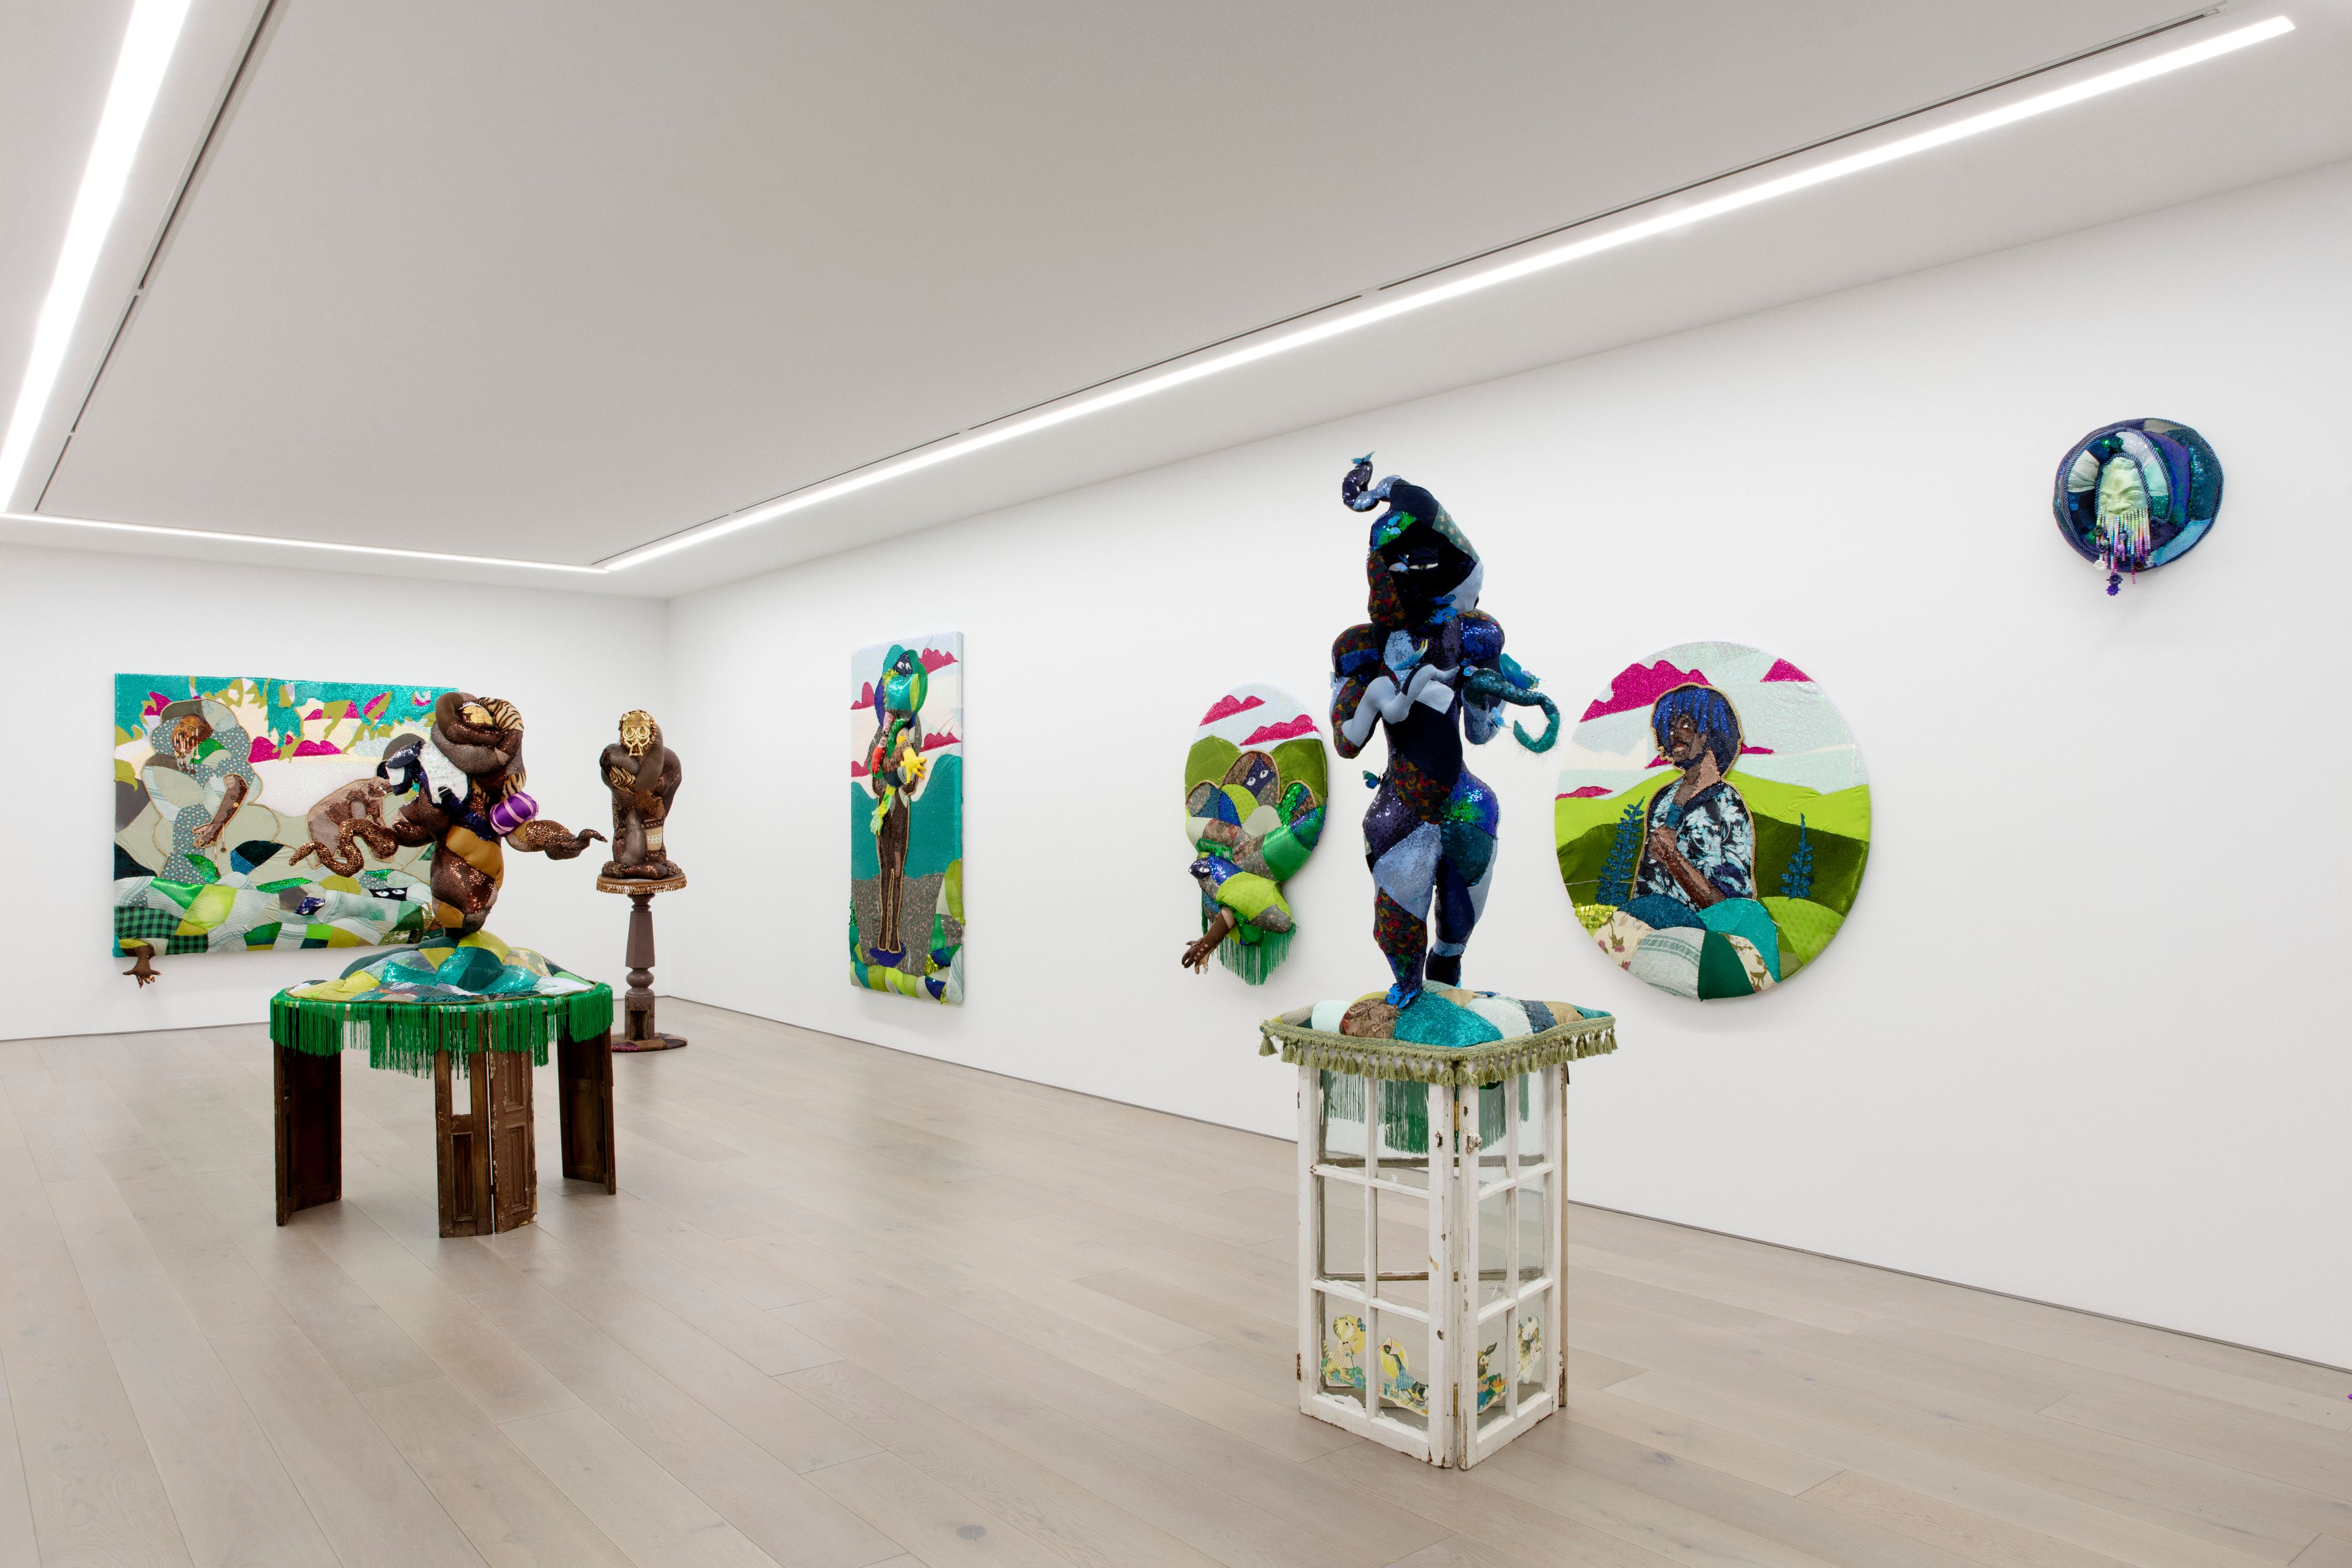 Installation View of Trevon Latin: Trinket Eater at Perrotin New York, 2021. Photographer: Guillaume Ziccarelli. Courtesy of the artist and Perrotin.